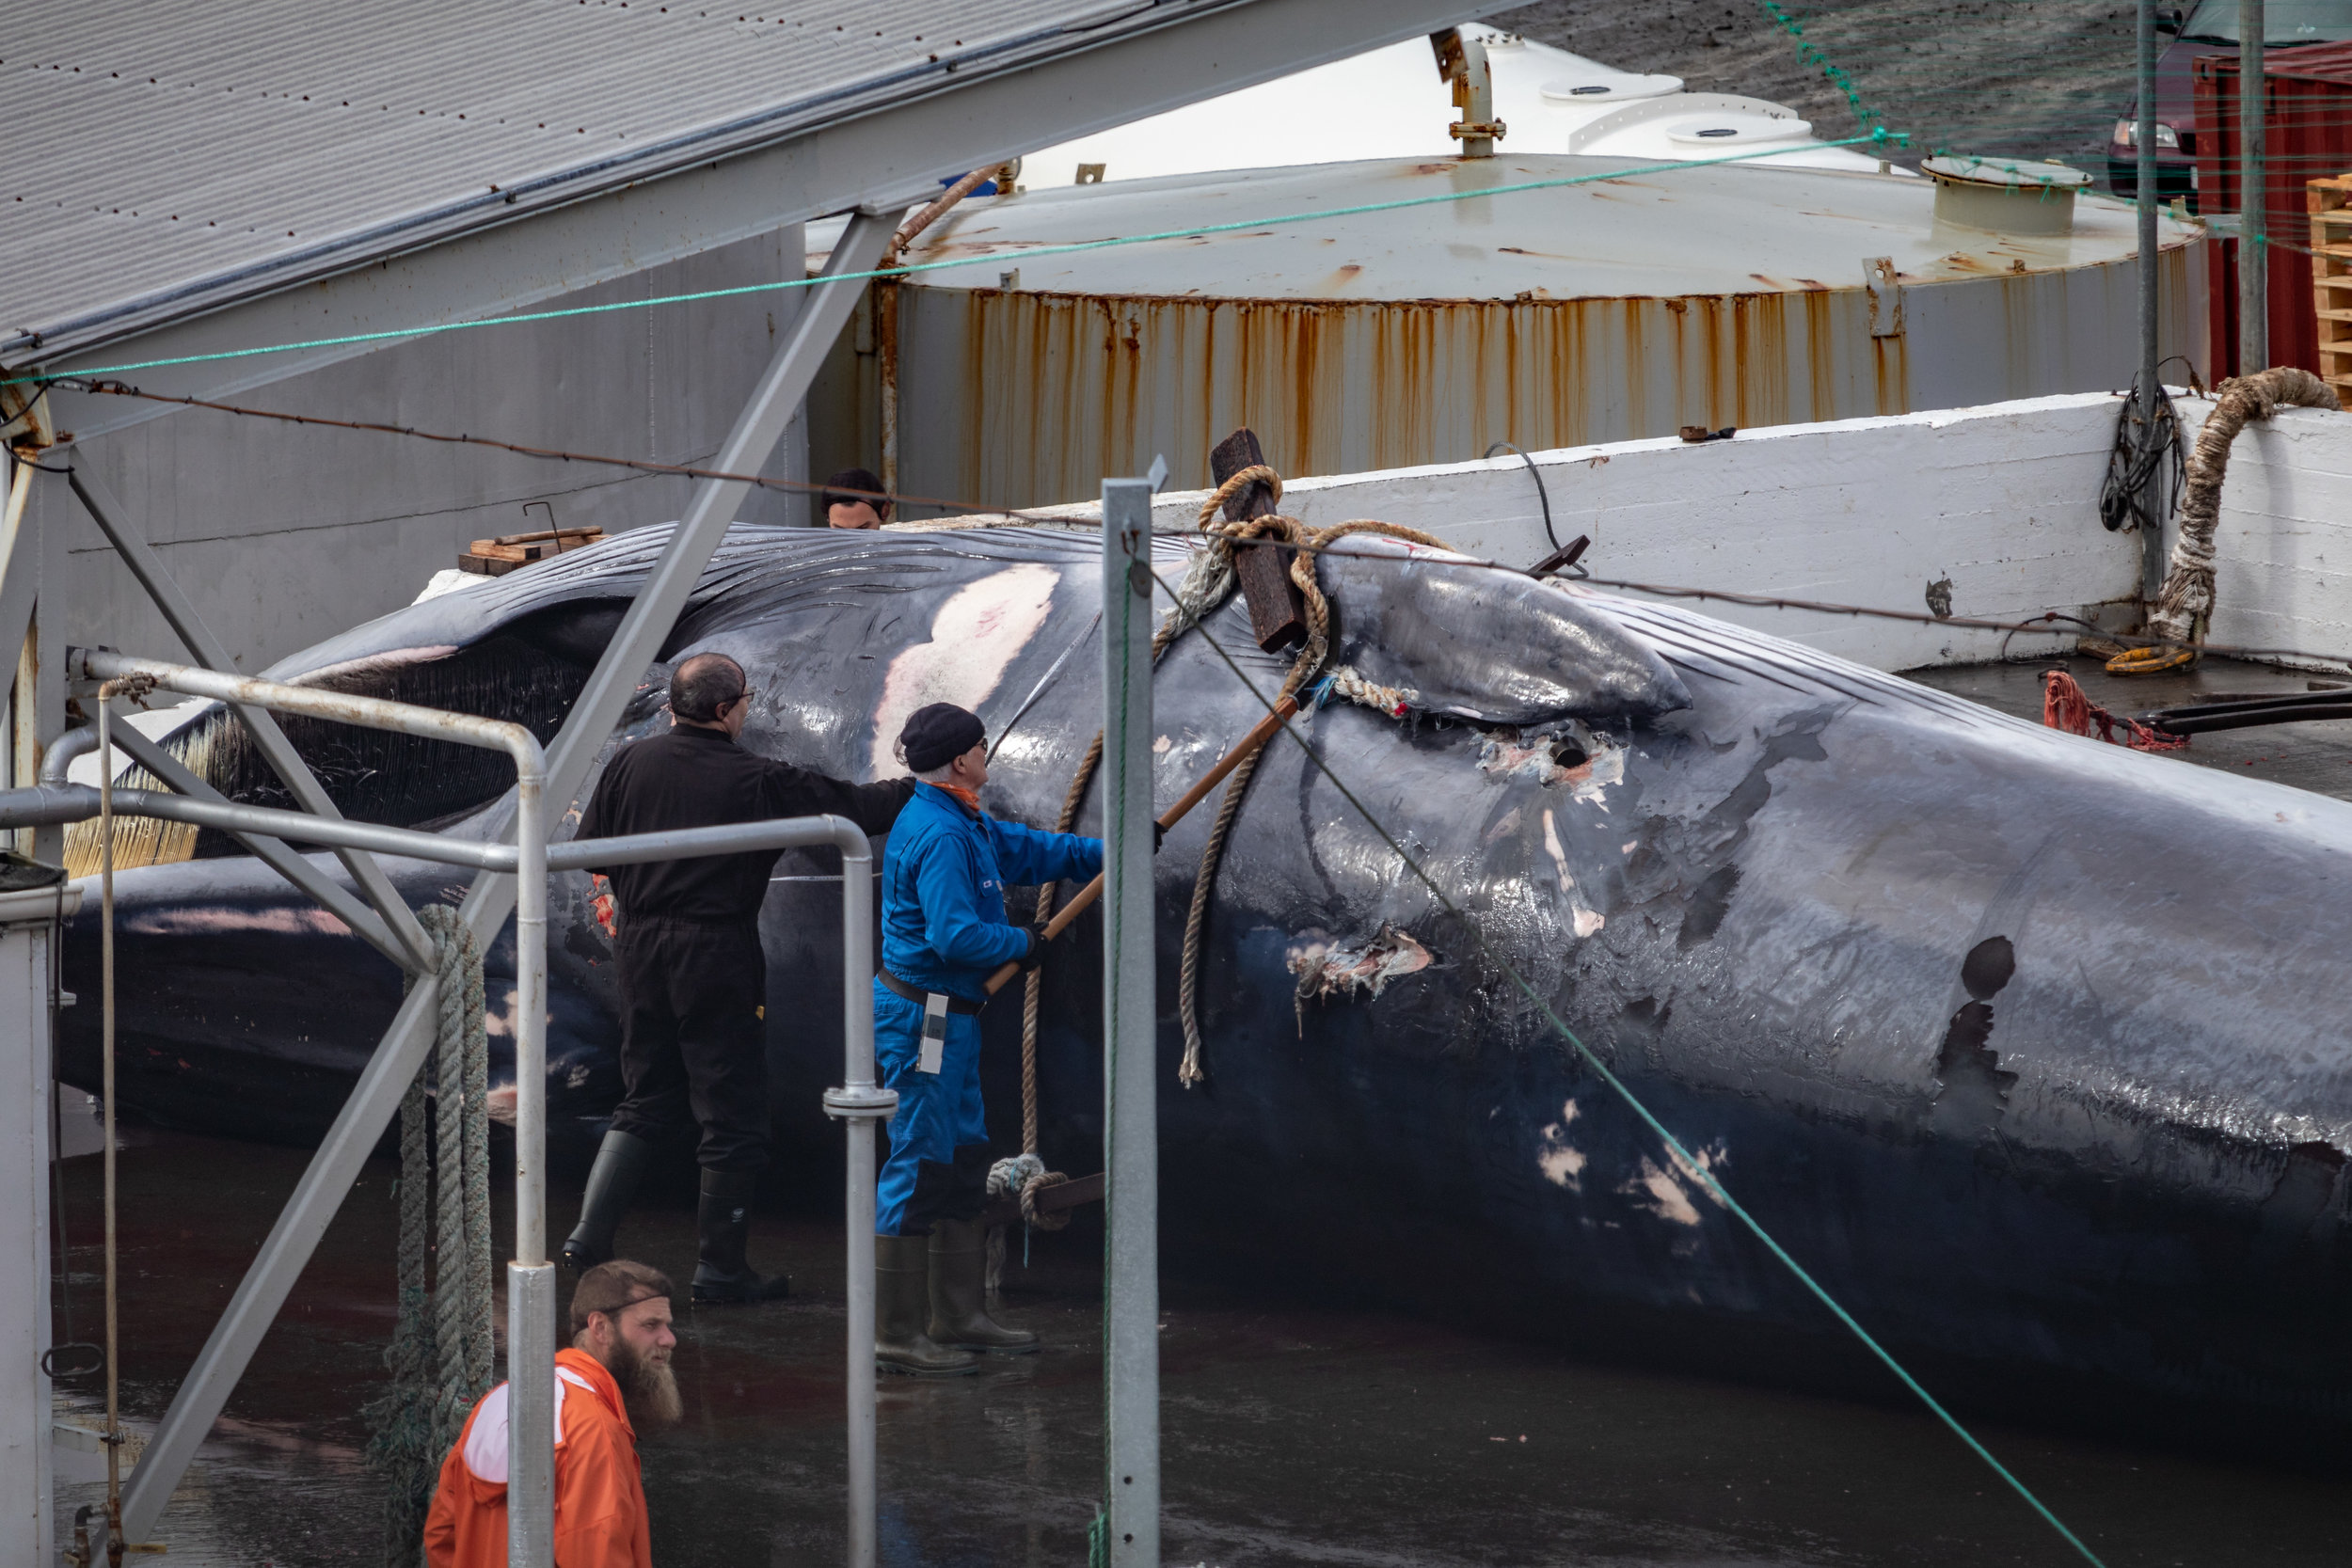 The vets take size measurements whilst a worker goes about immediately removing the rope that attached the whale to the side of the boat.